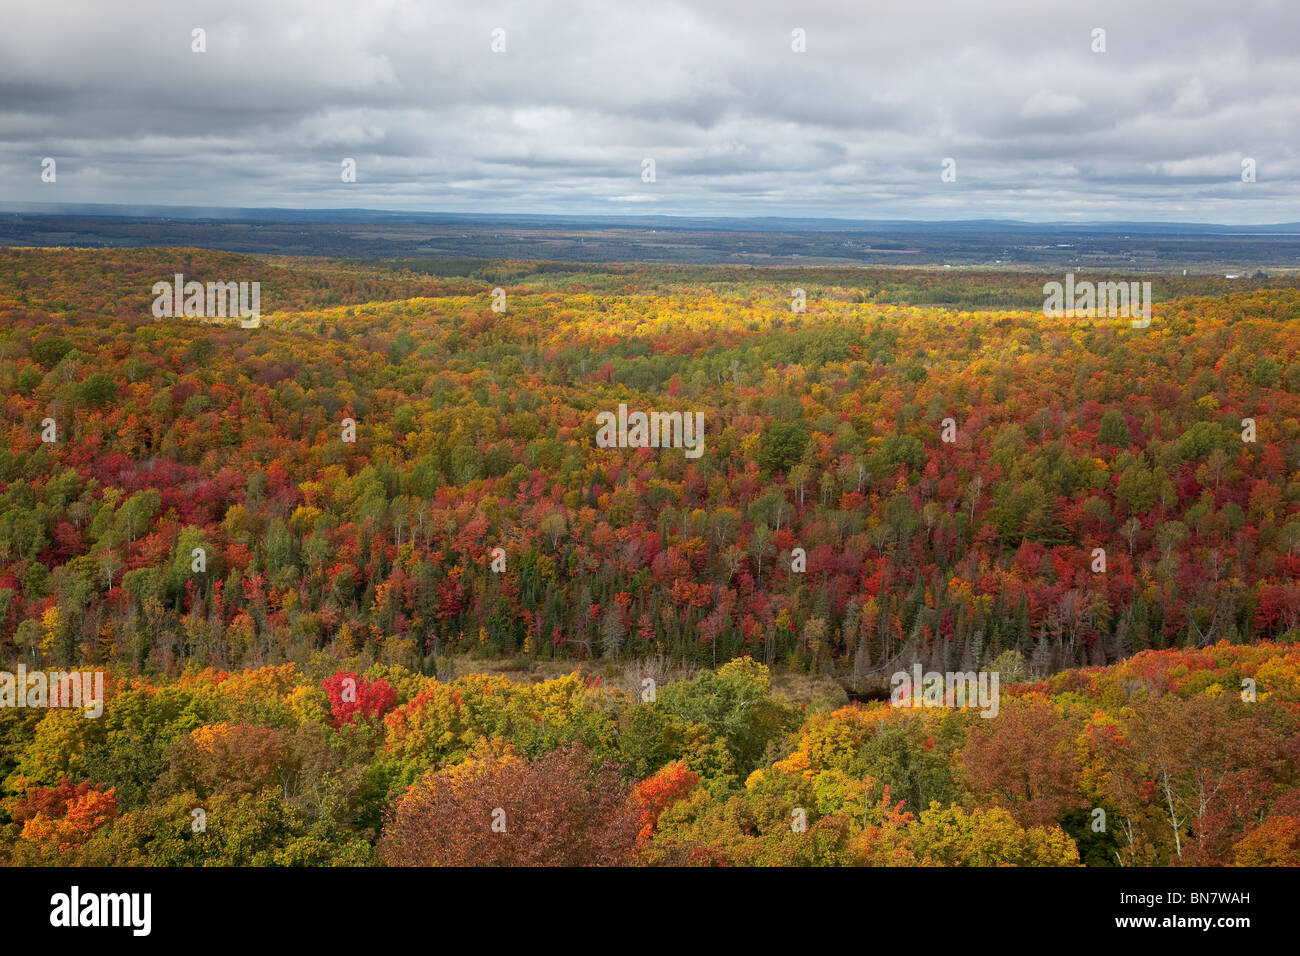 View from St. Peter's Dome at 1600 ft, the summit of Chequamegon National Forest, WI - Stock Image